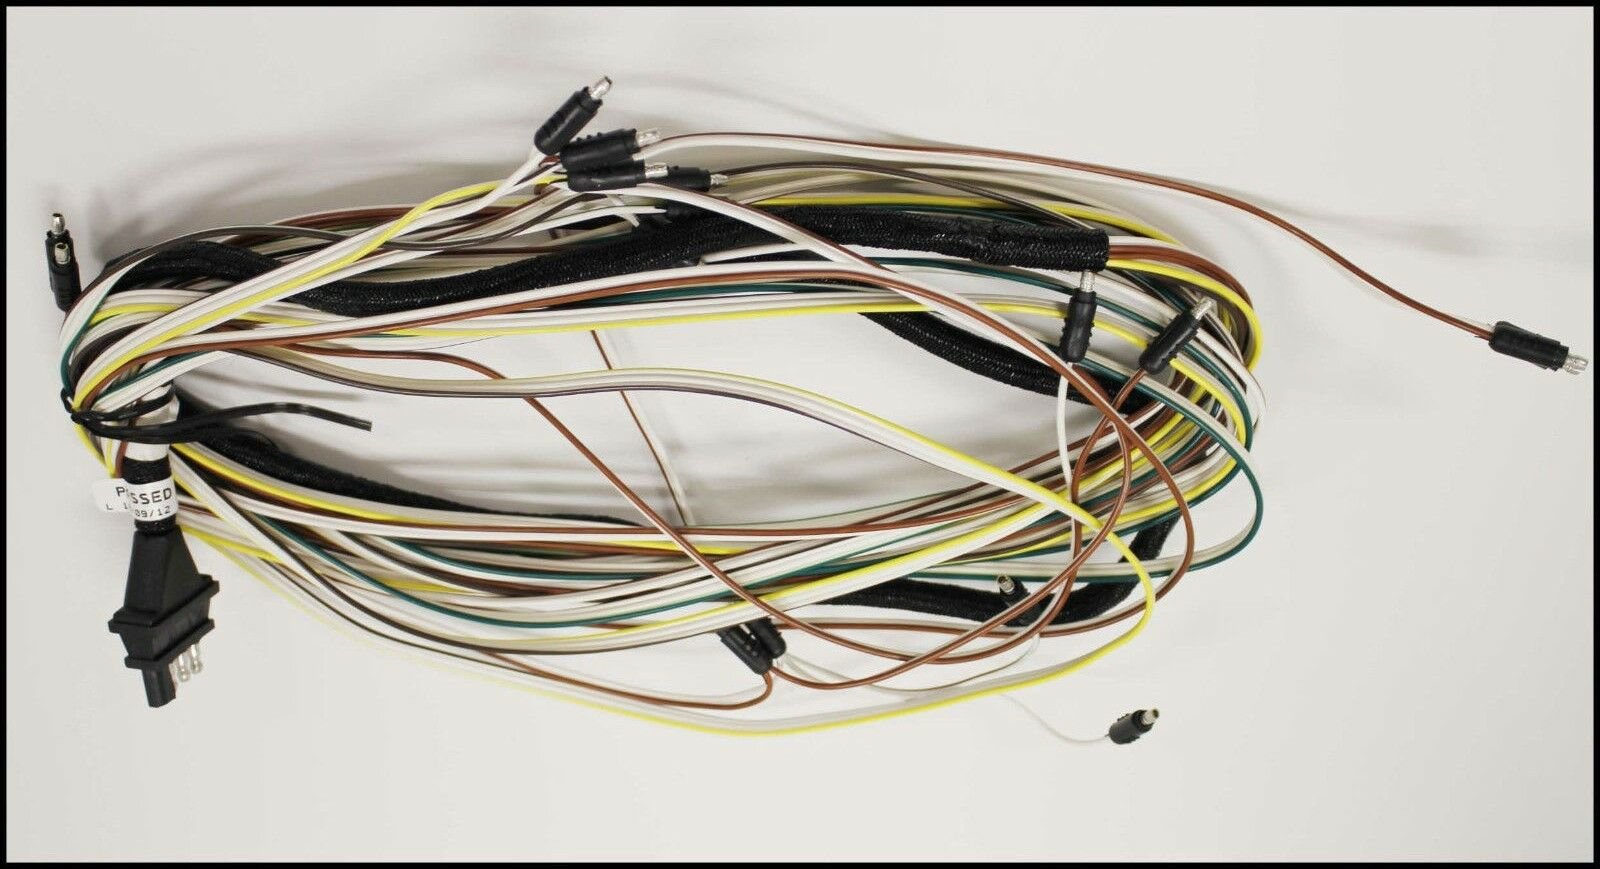 Triton 08428 XT  Trailer Wire Harness  sale with high discount